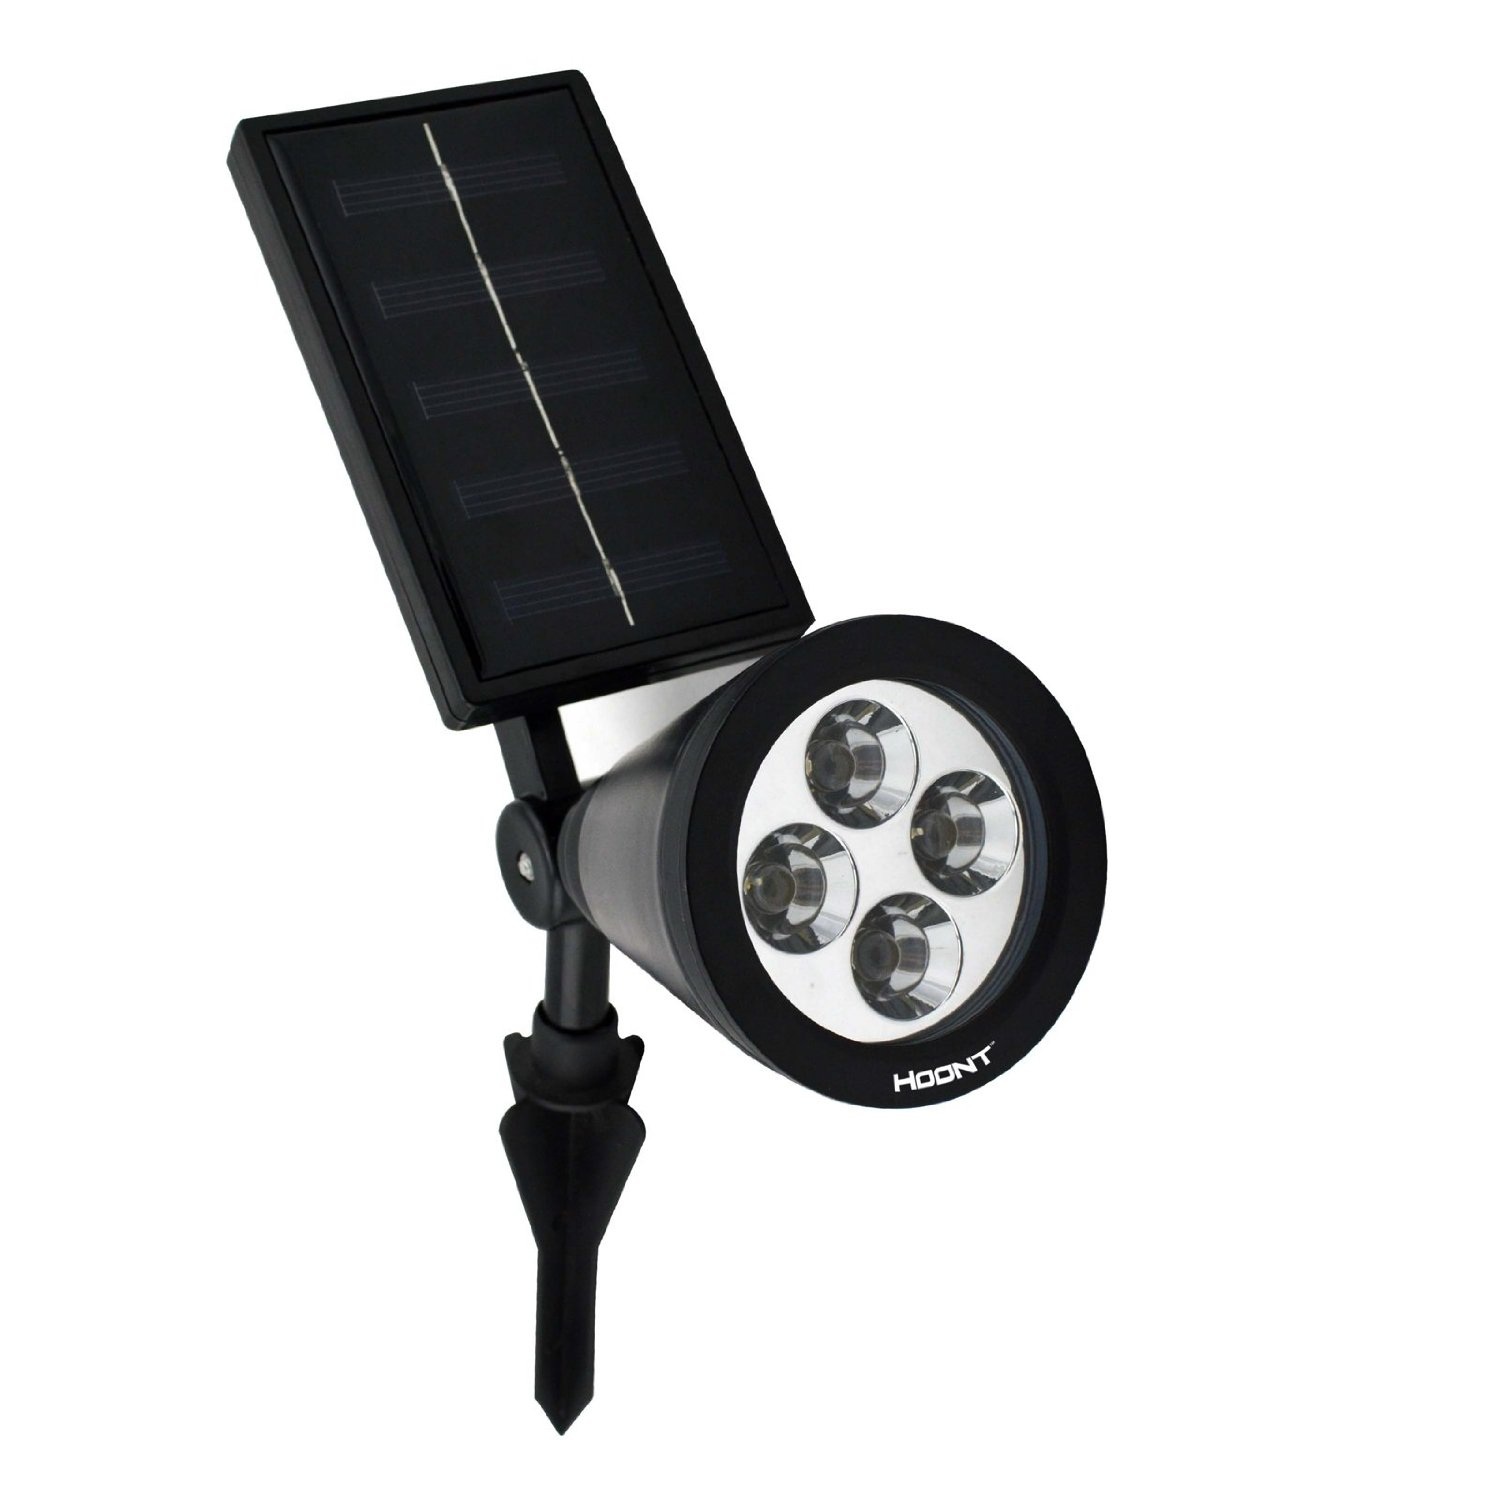 Small Garden Solar Spot Lights: Five Best Solar Powered Garden Lights For 2017: Our